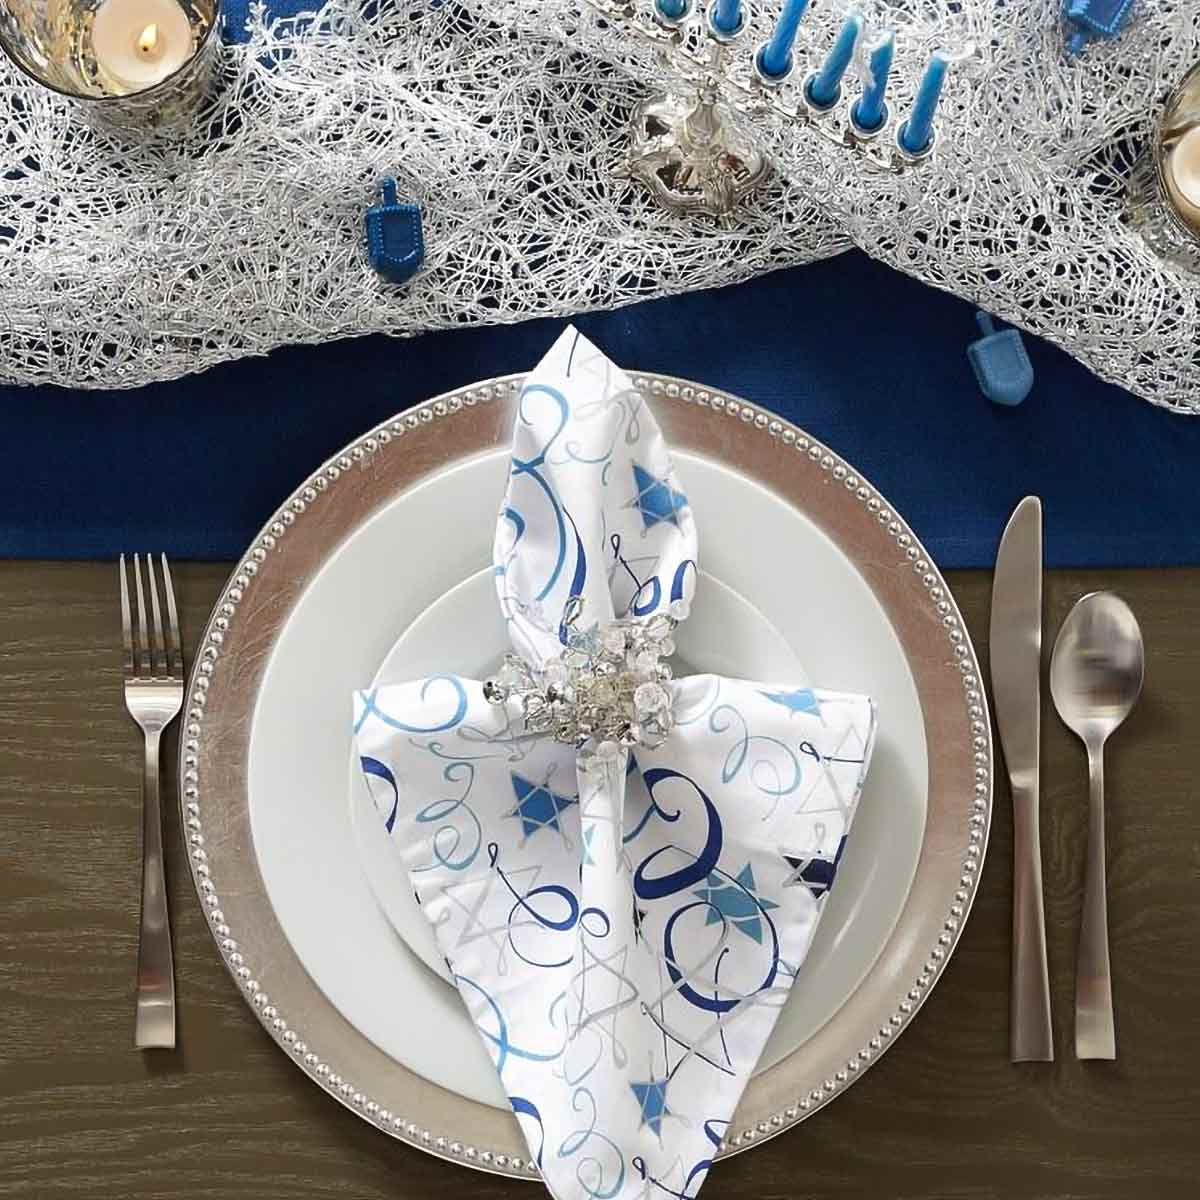 Hanukkah Swirls Printed Napkins on plate with silver and crystal napkin ring.